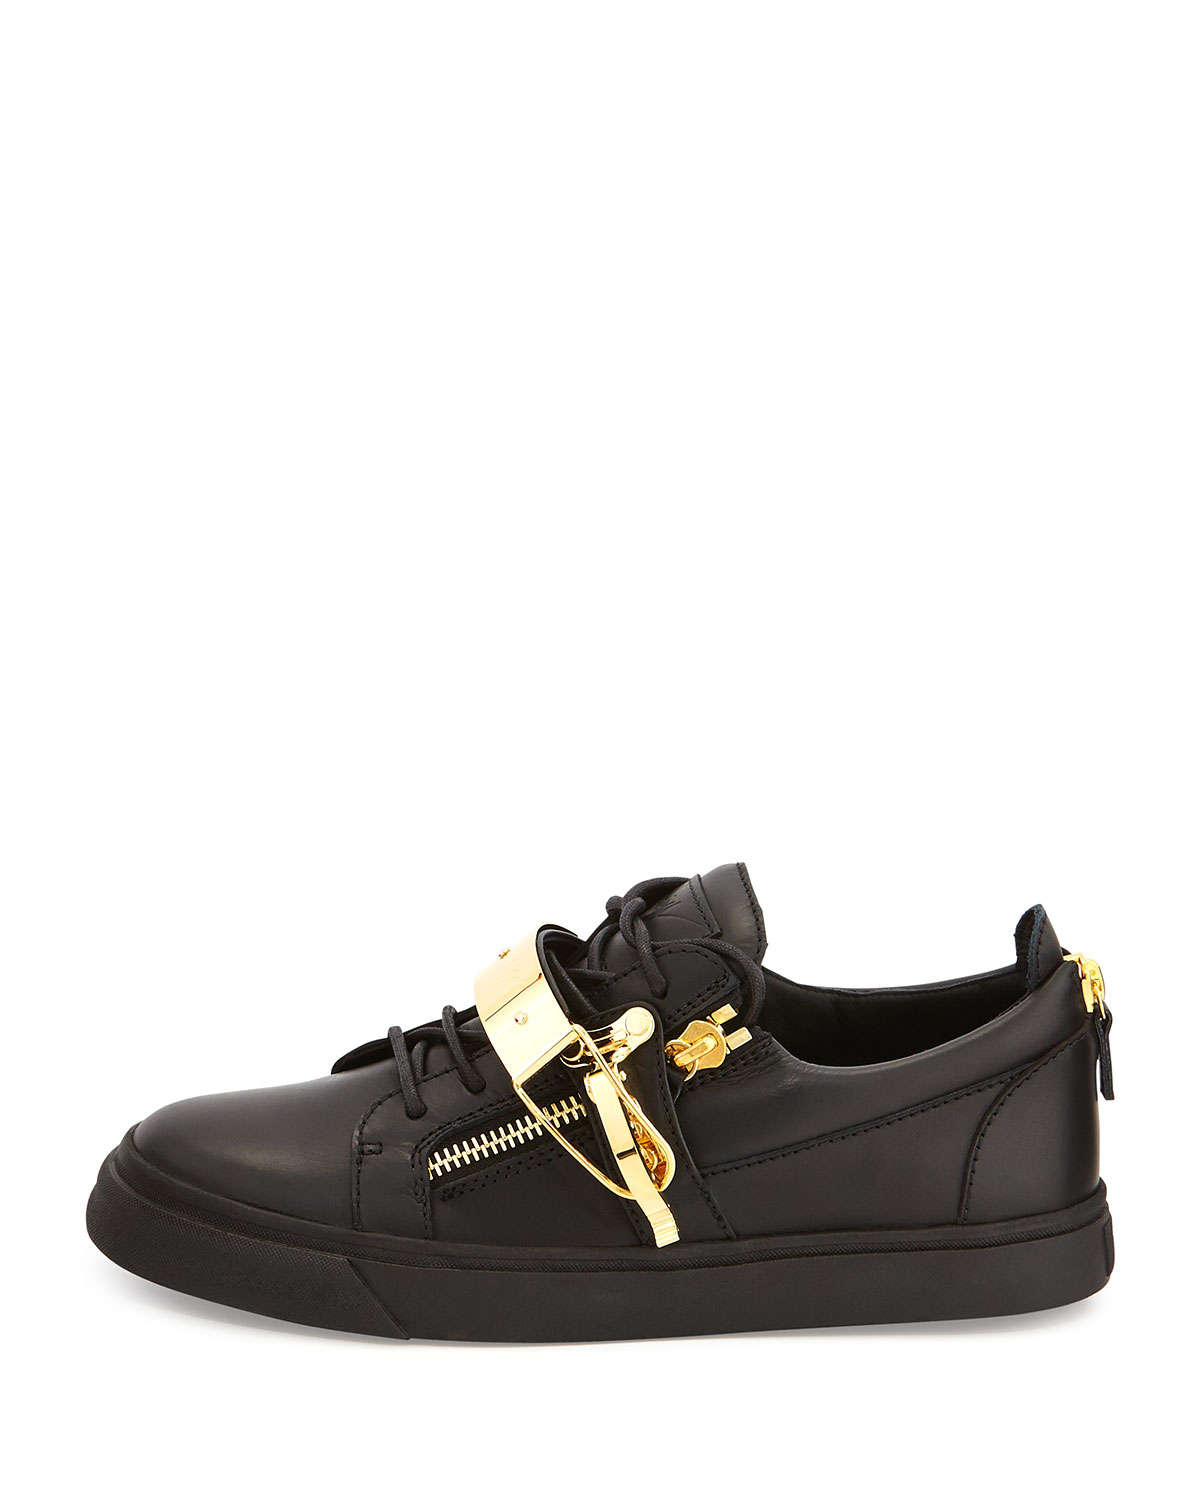 giuseppe zanotti leather metal strap low top sneakers in black for men lyst. Black Bedroom Furniture Sets. Home Design Ideas